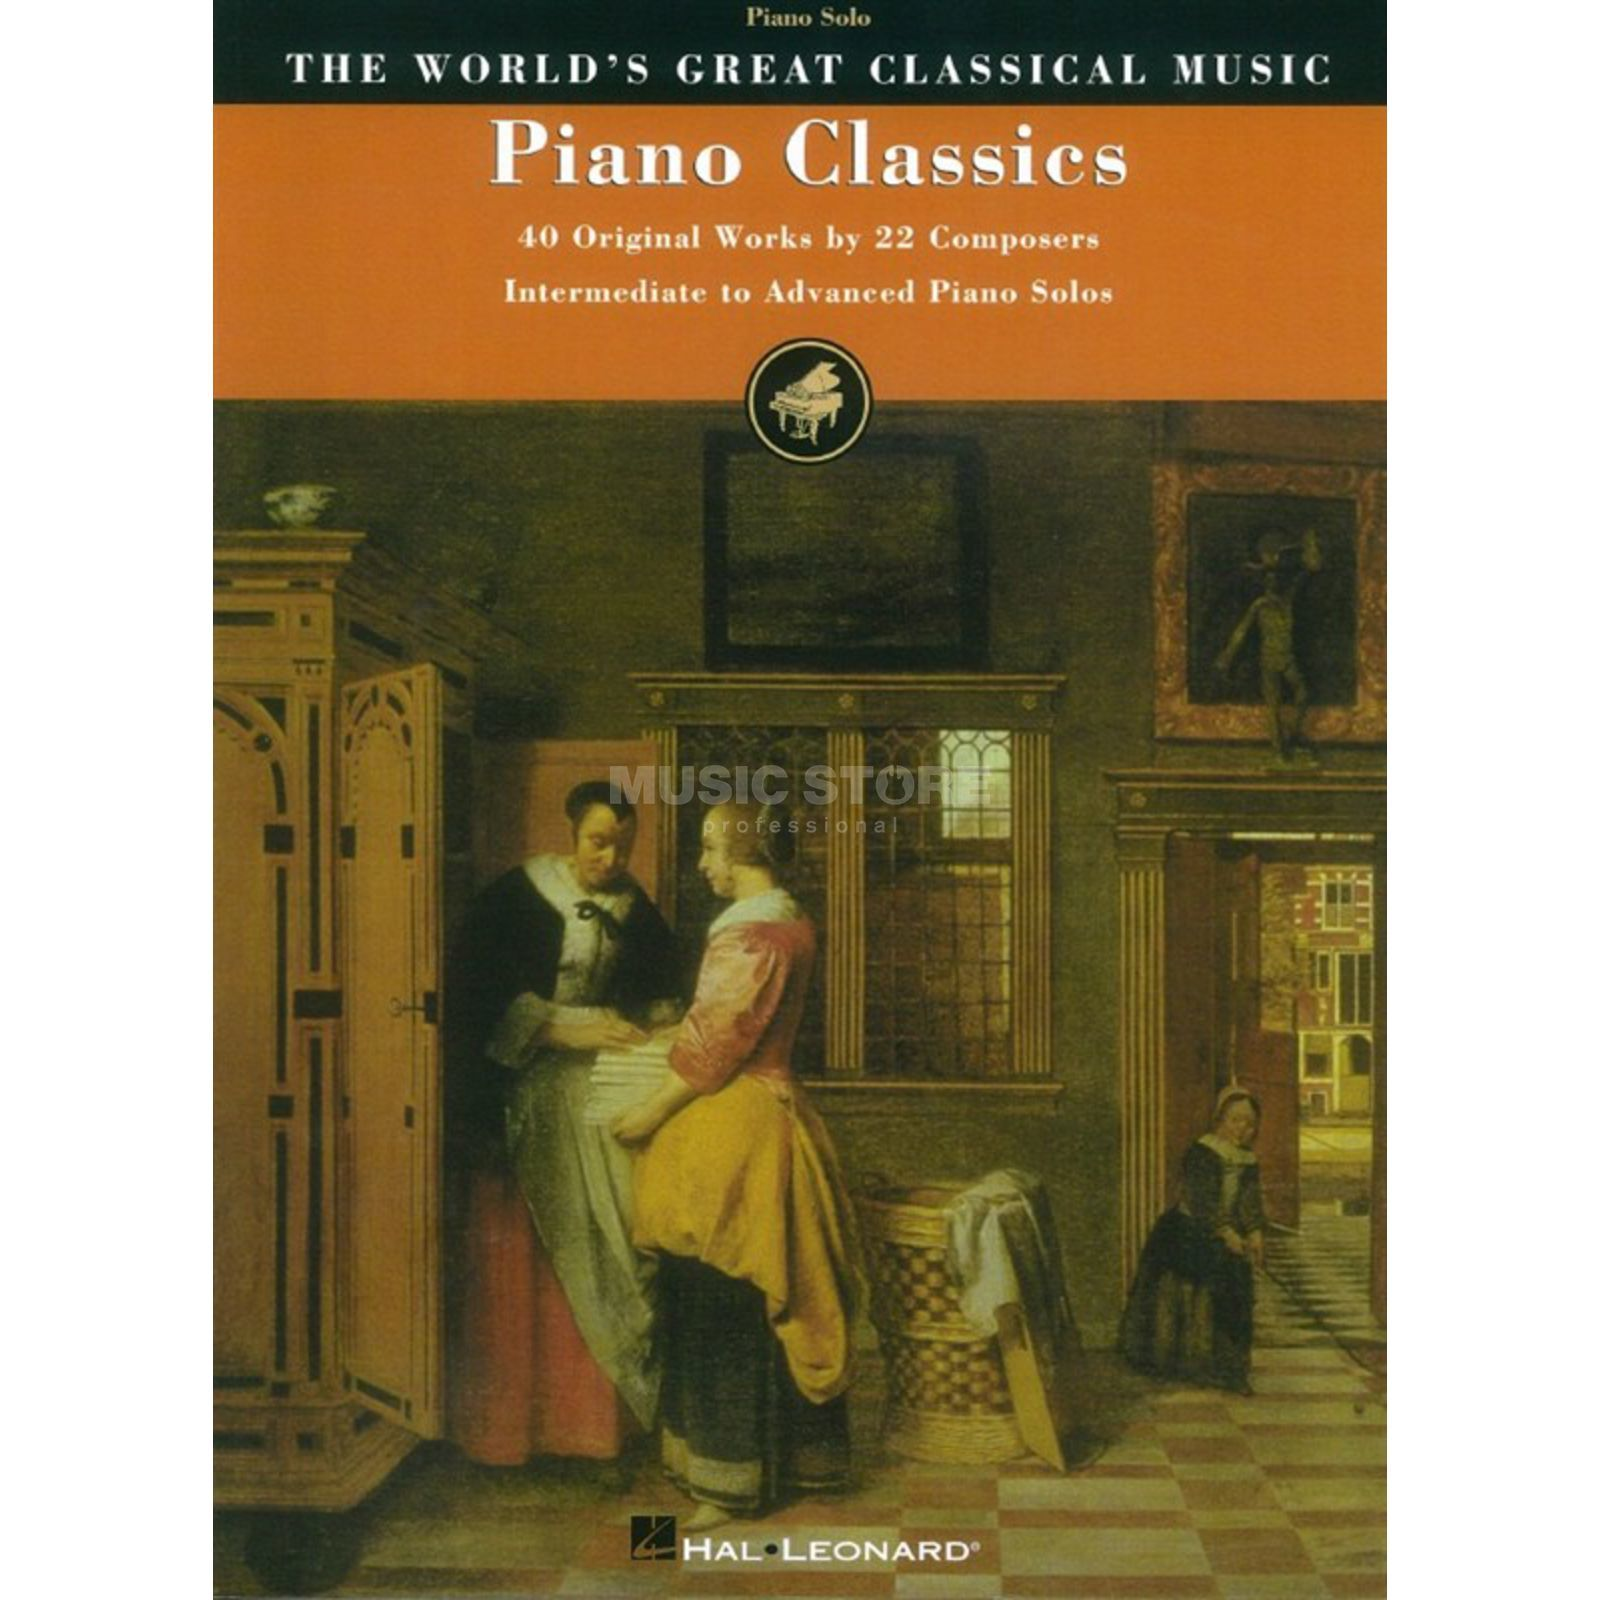 Hal Leonard Piano Classics: 40 Original Works By 22 Composers Product Image